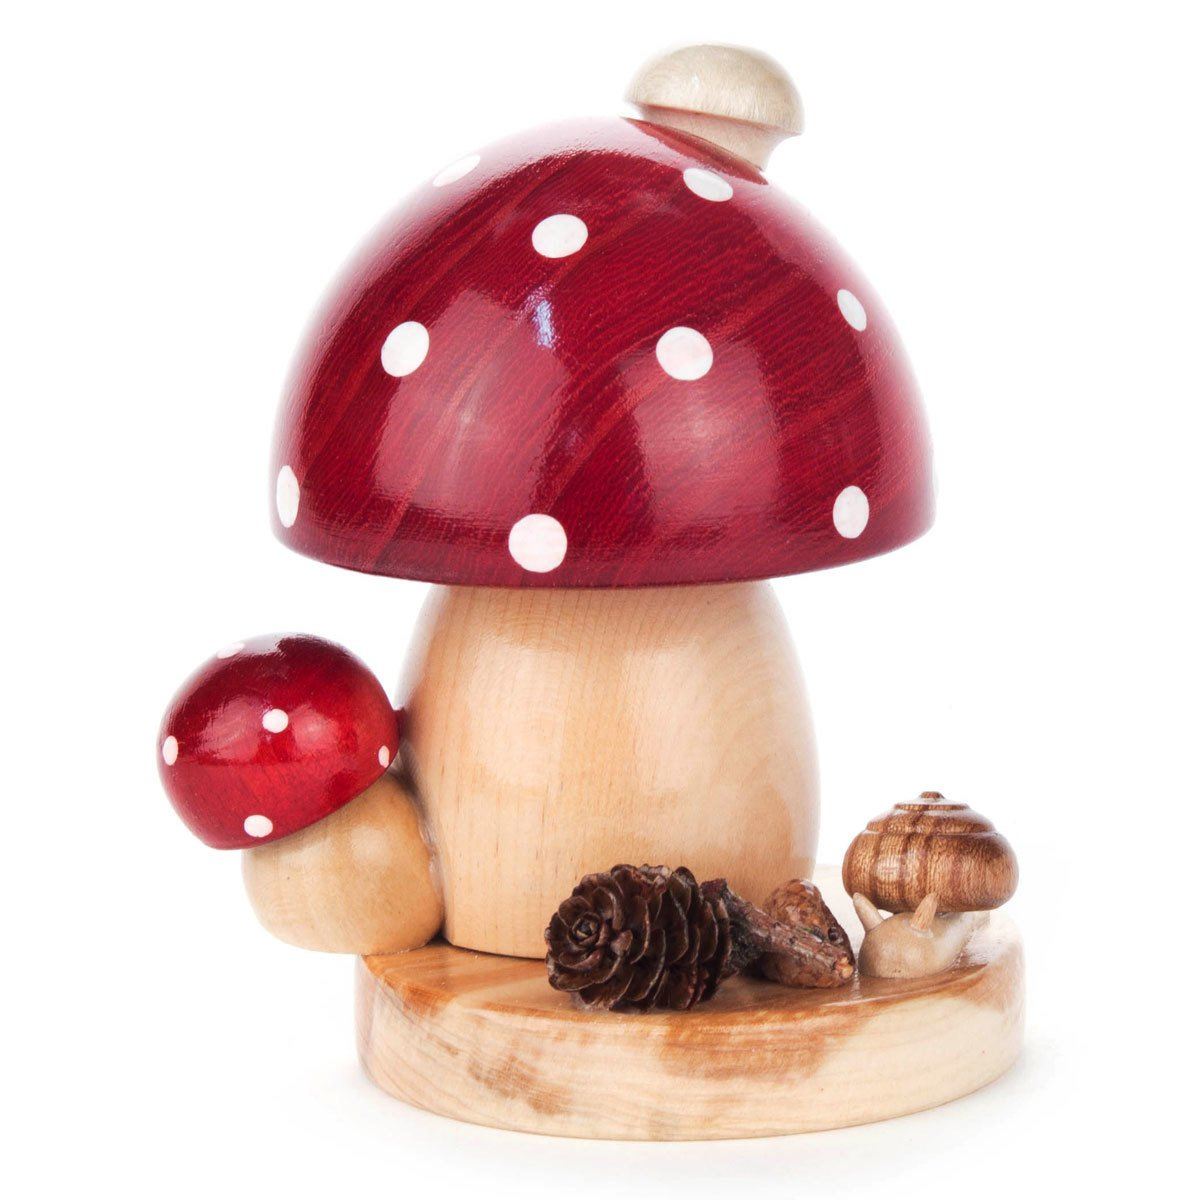 Dregano Small Forest Dotted Red Mushroom German Smoker - 4.25 Inches Tall - Made in Germany